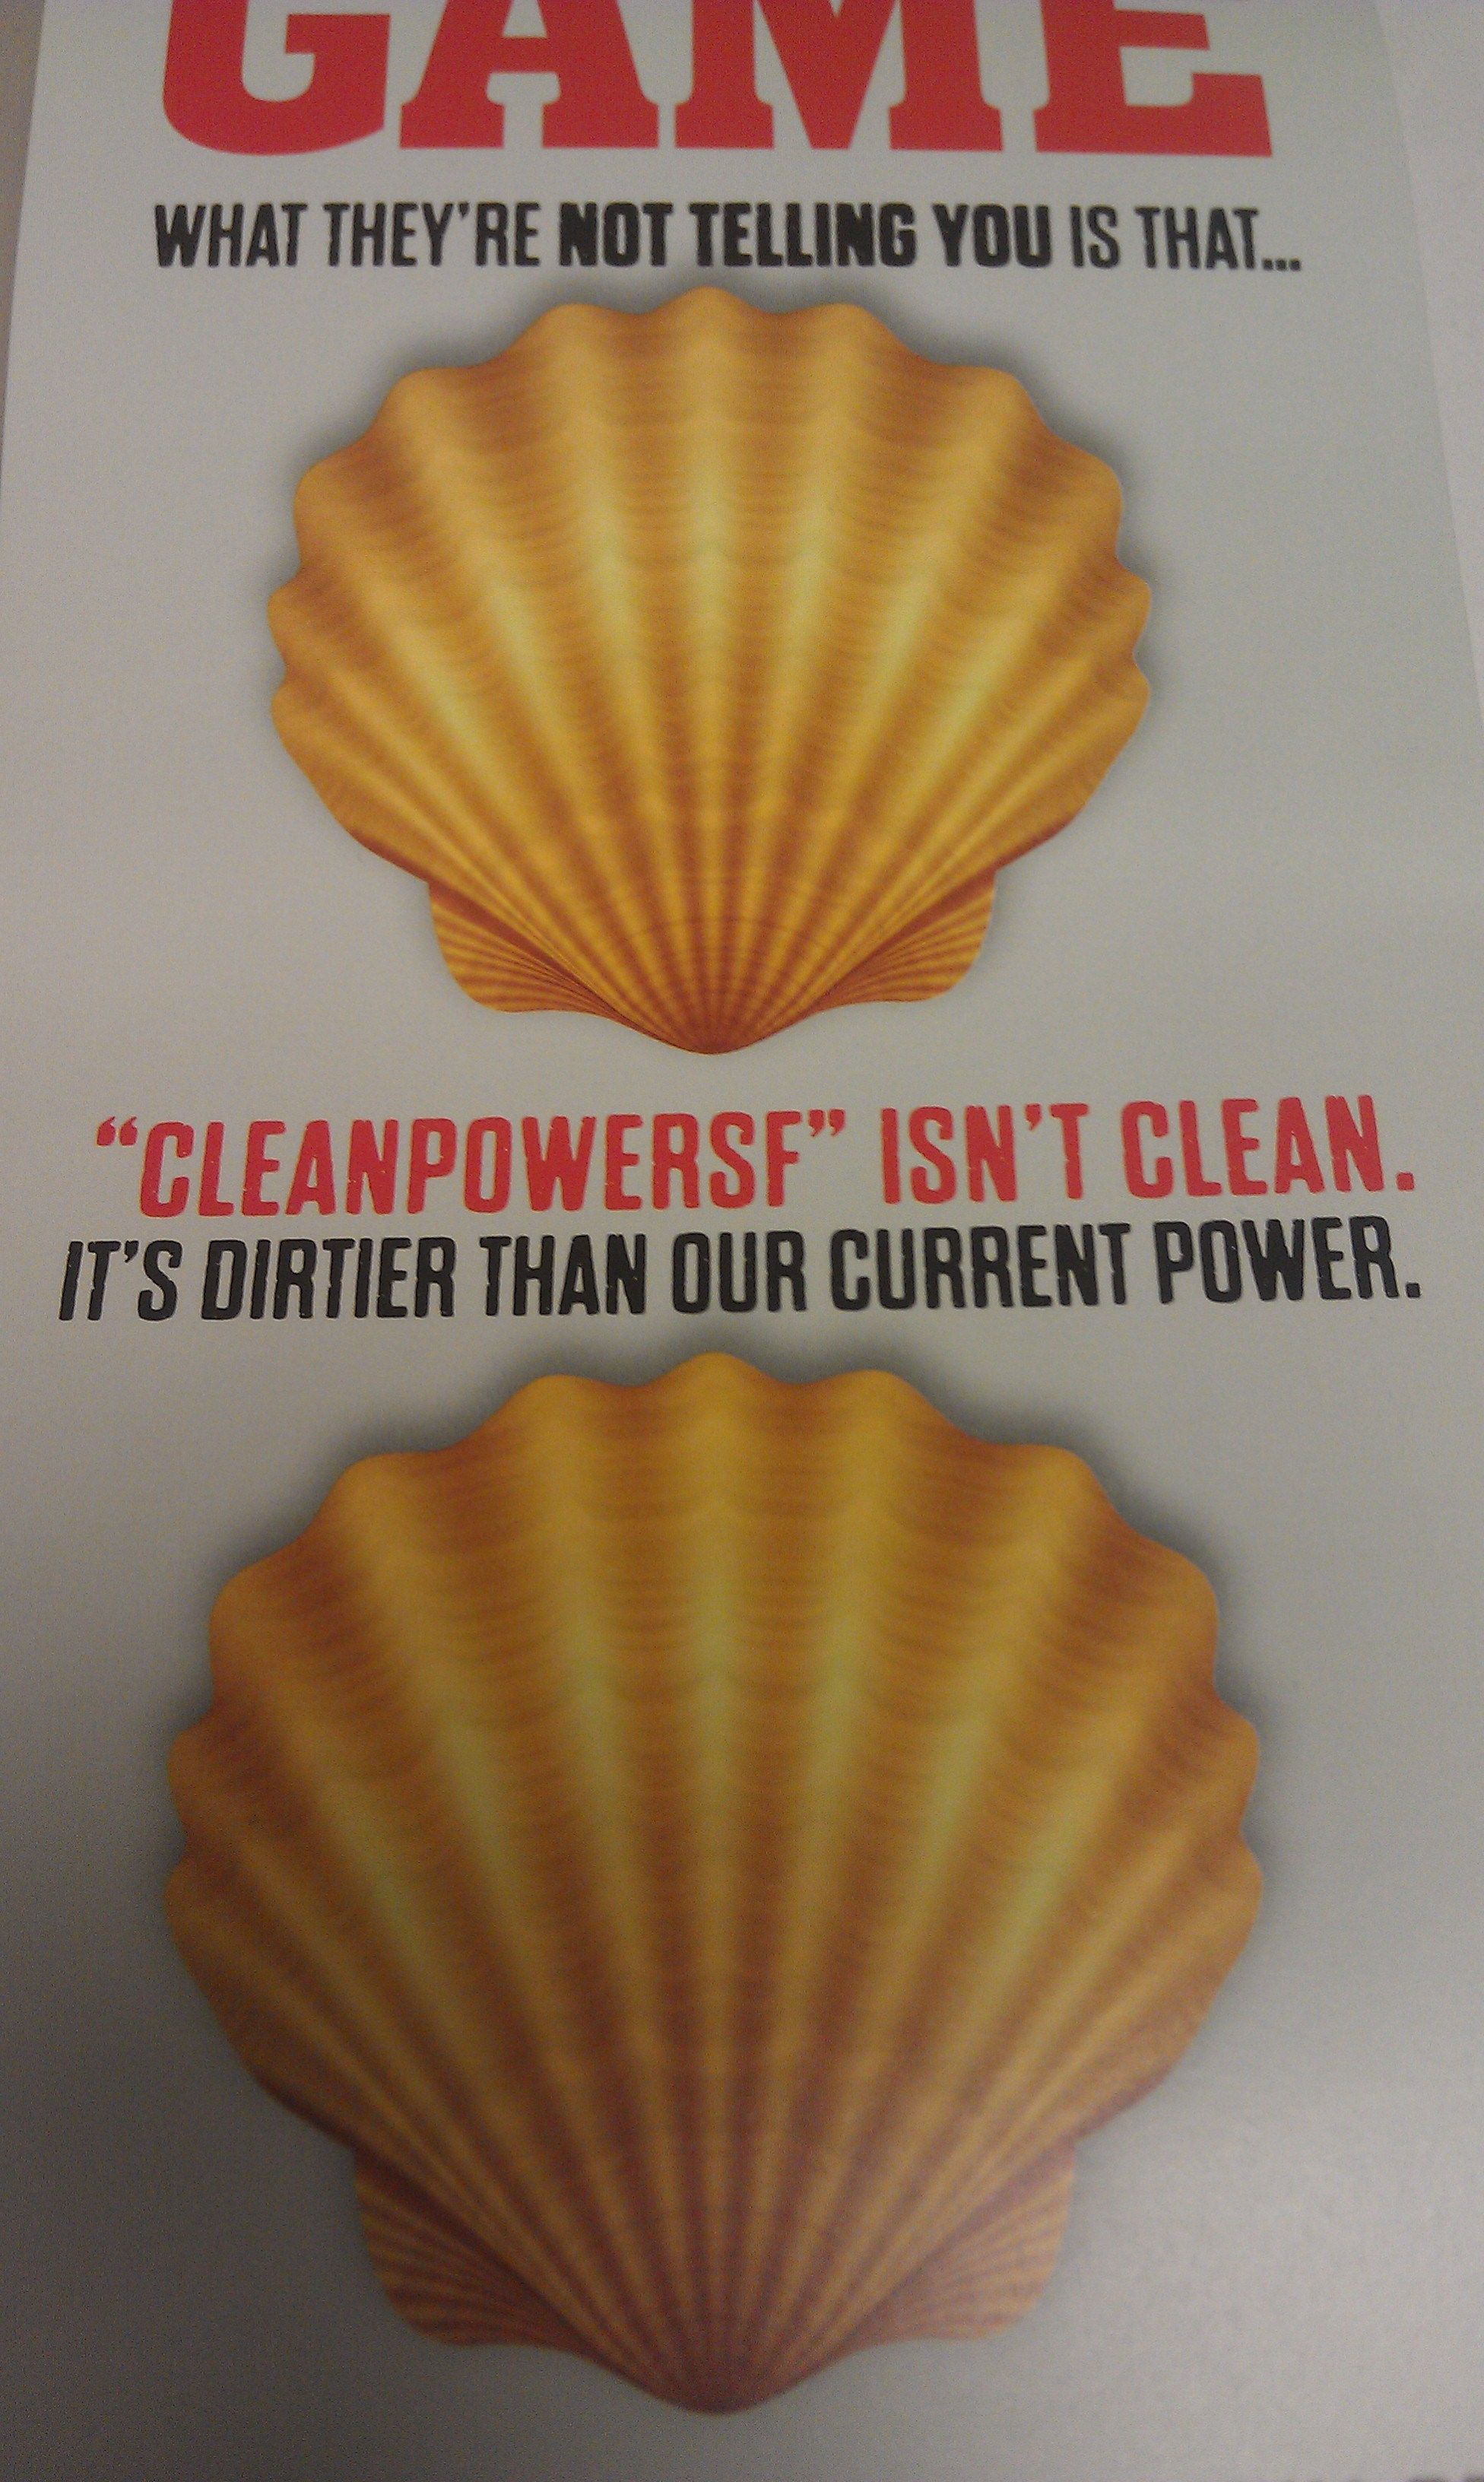 PG&E union spreads lies about CleanPowerSF